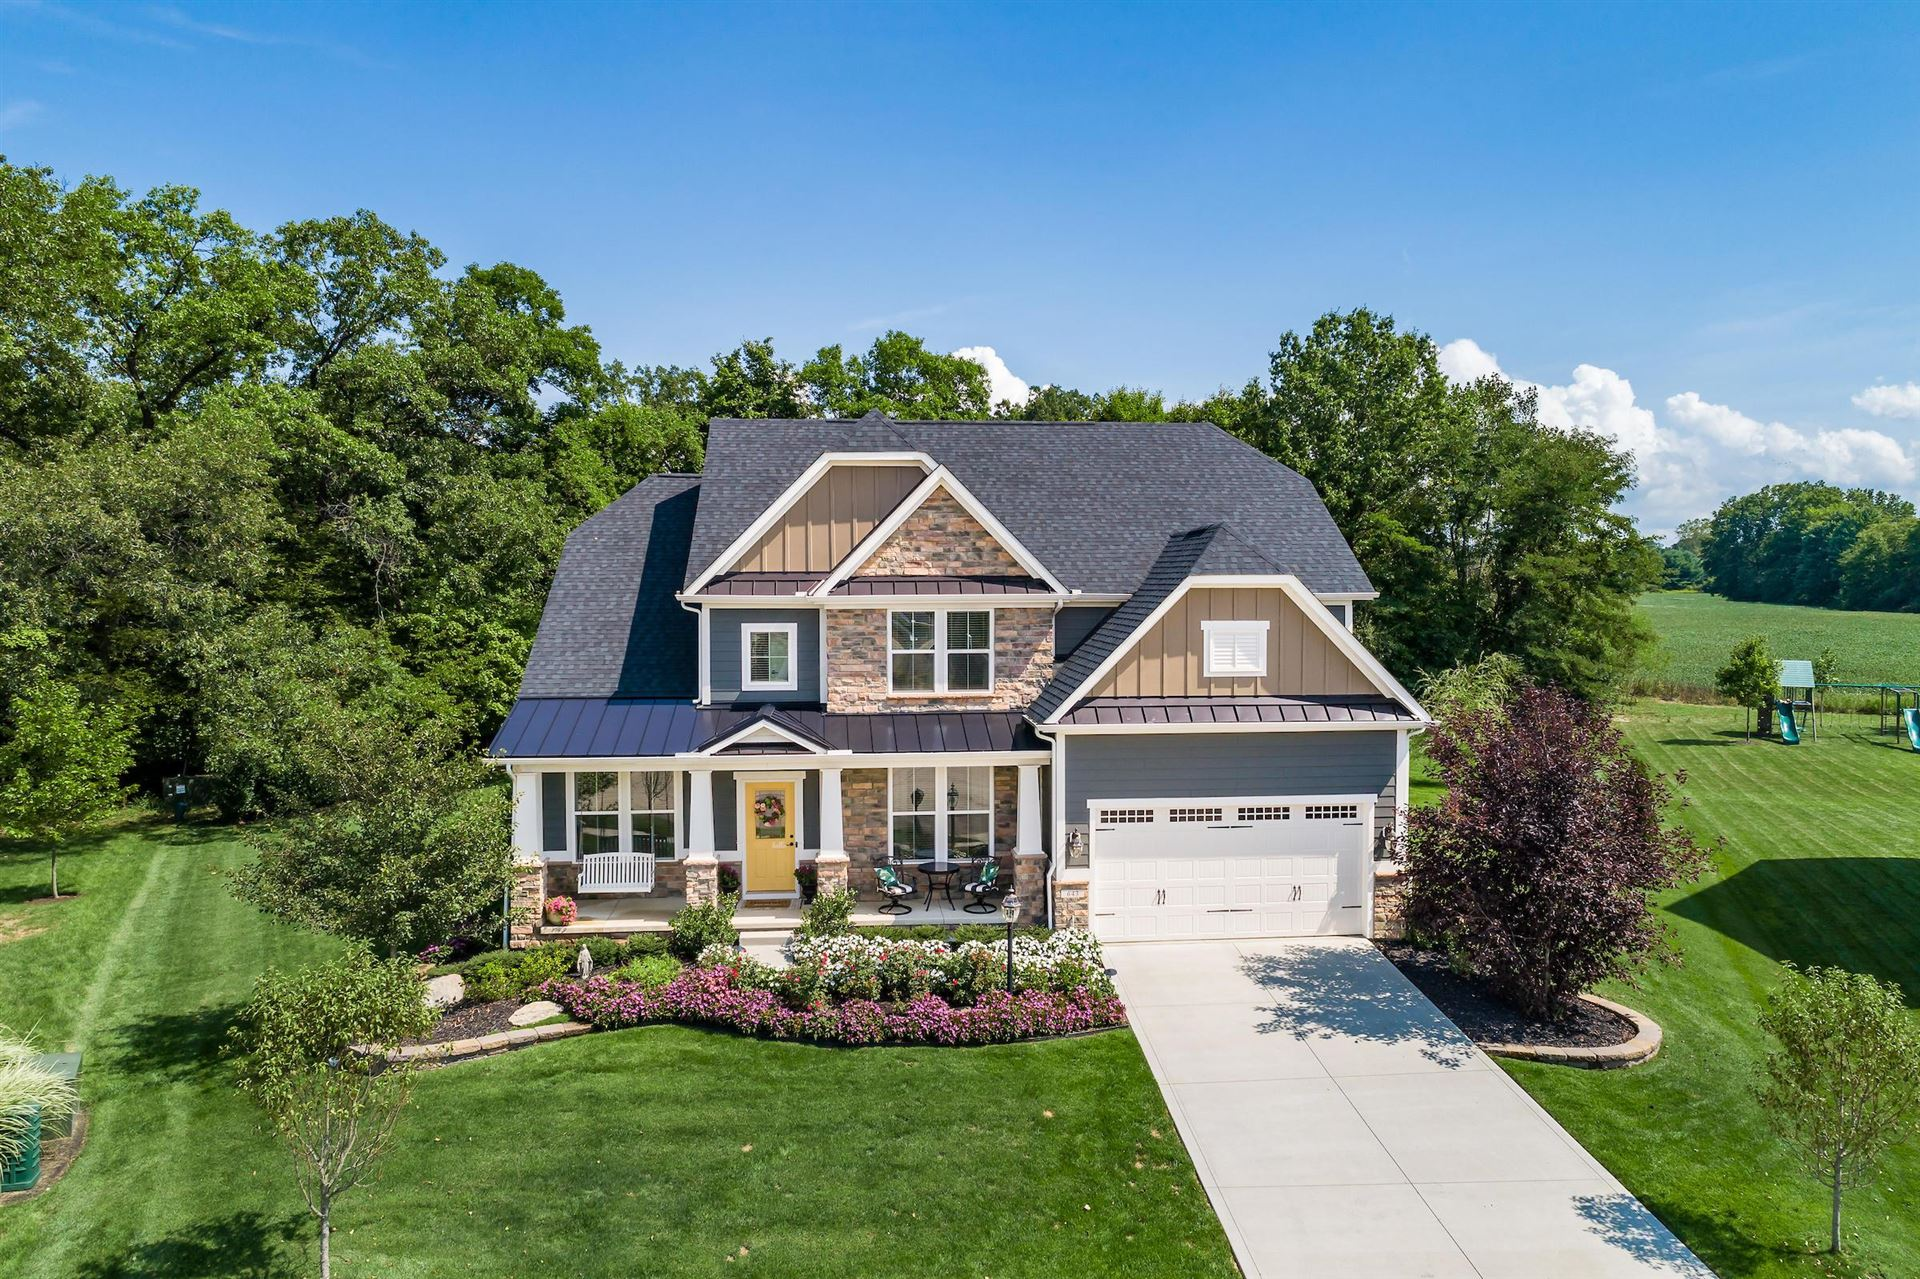 Photo of 643 Cliff View Drive, Galena, OH 43021 (MLS # 221013776)